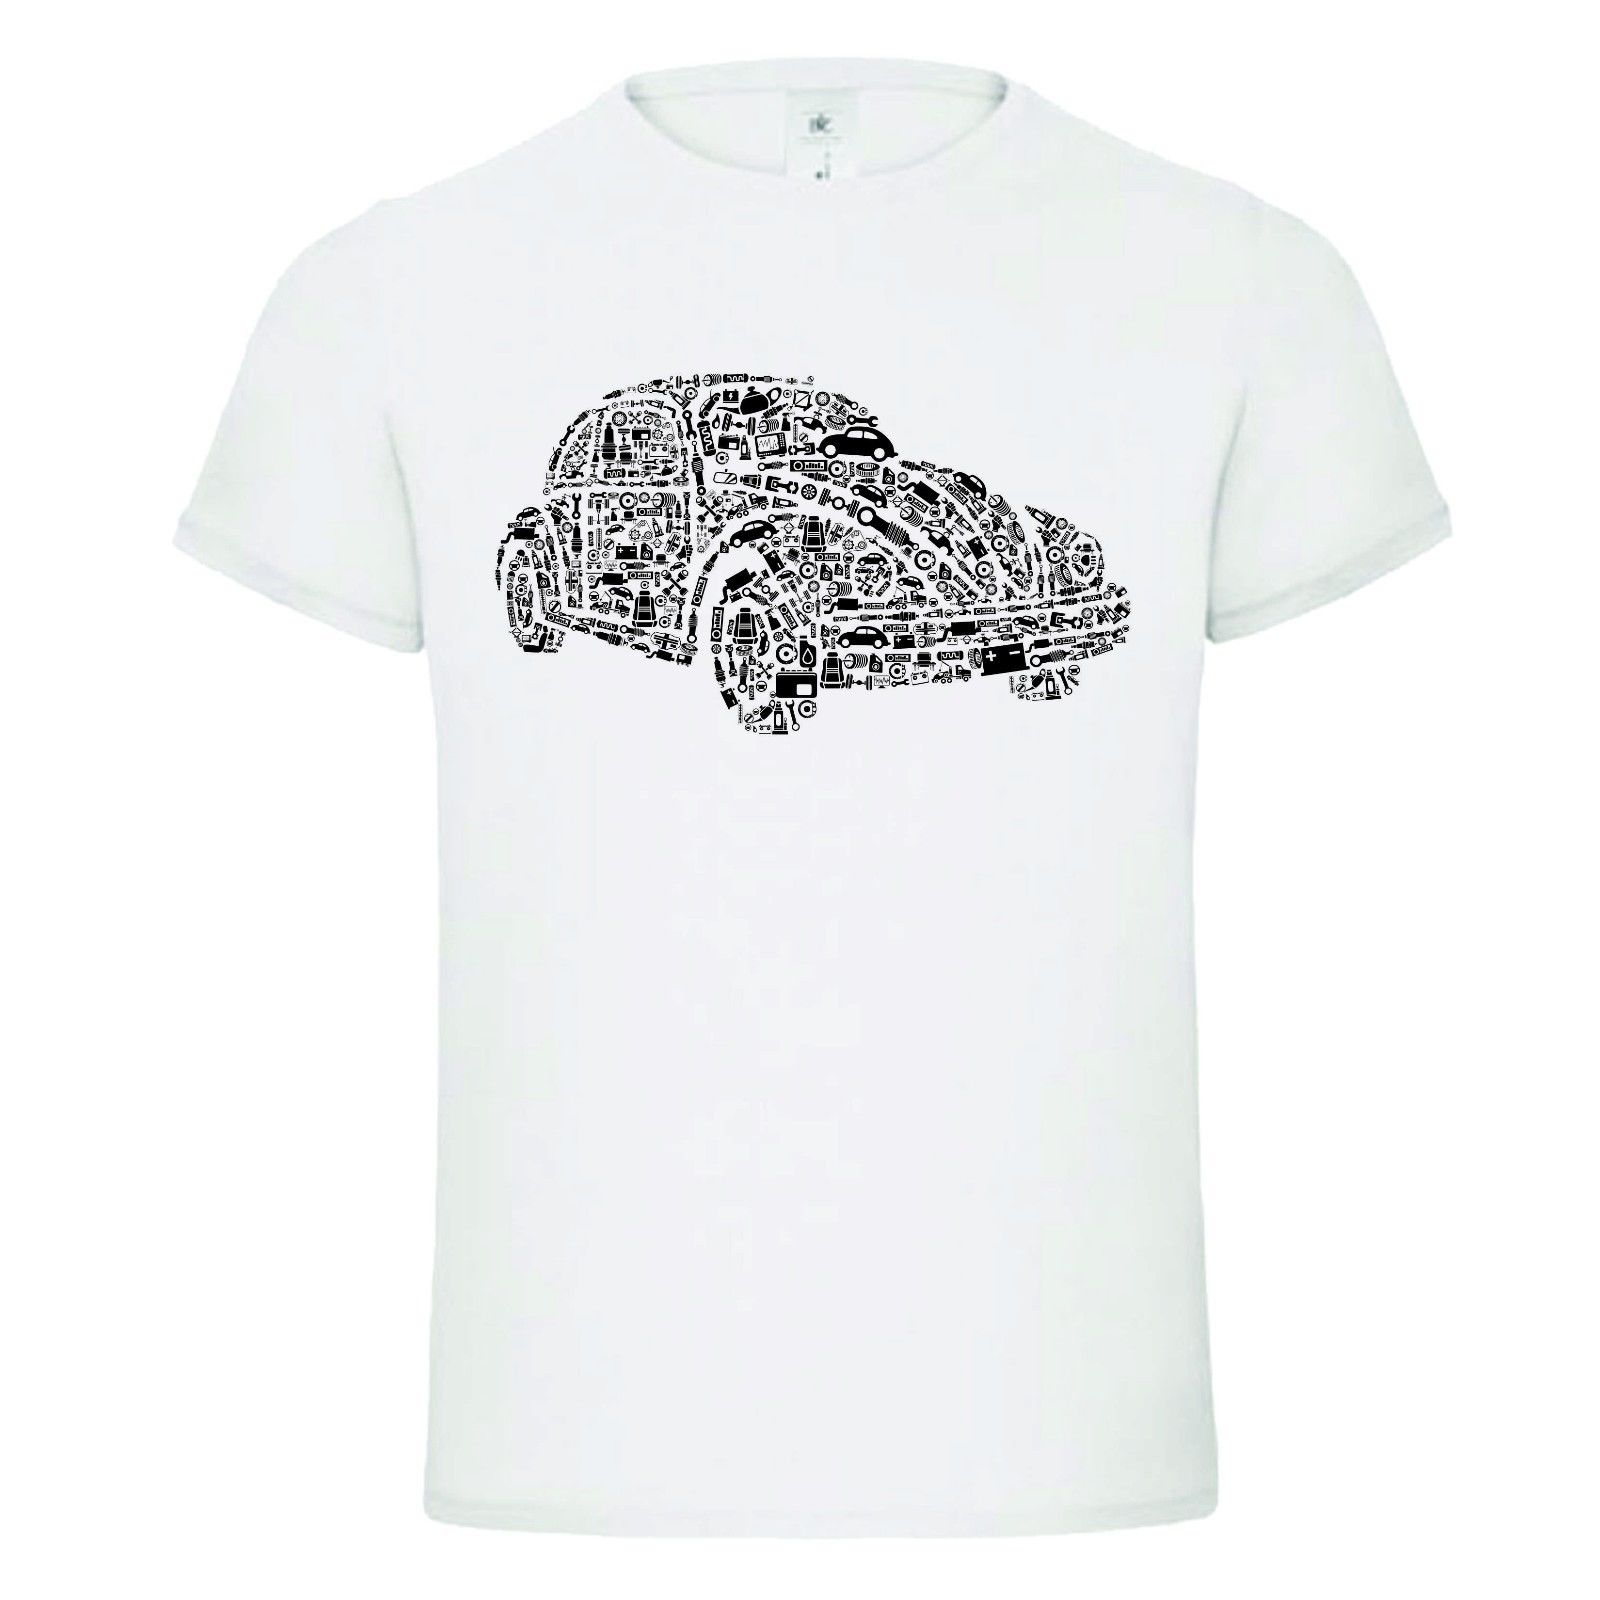 Fashion 100% Cotton Hot Sale Summer Classic Beetle Bug German Car Parts Shapes Funny T-shirt TEE Birthday Gift Dtg Tee Shirt